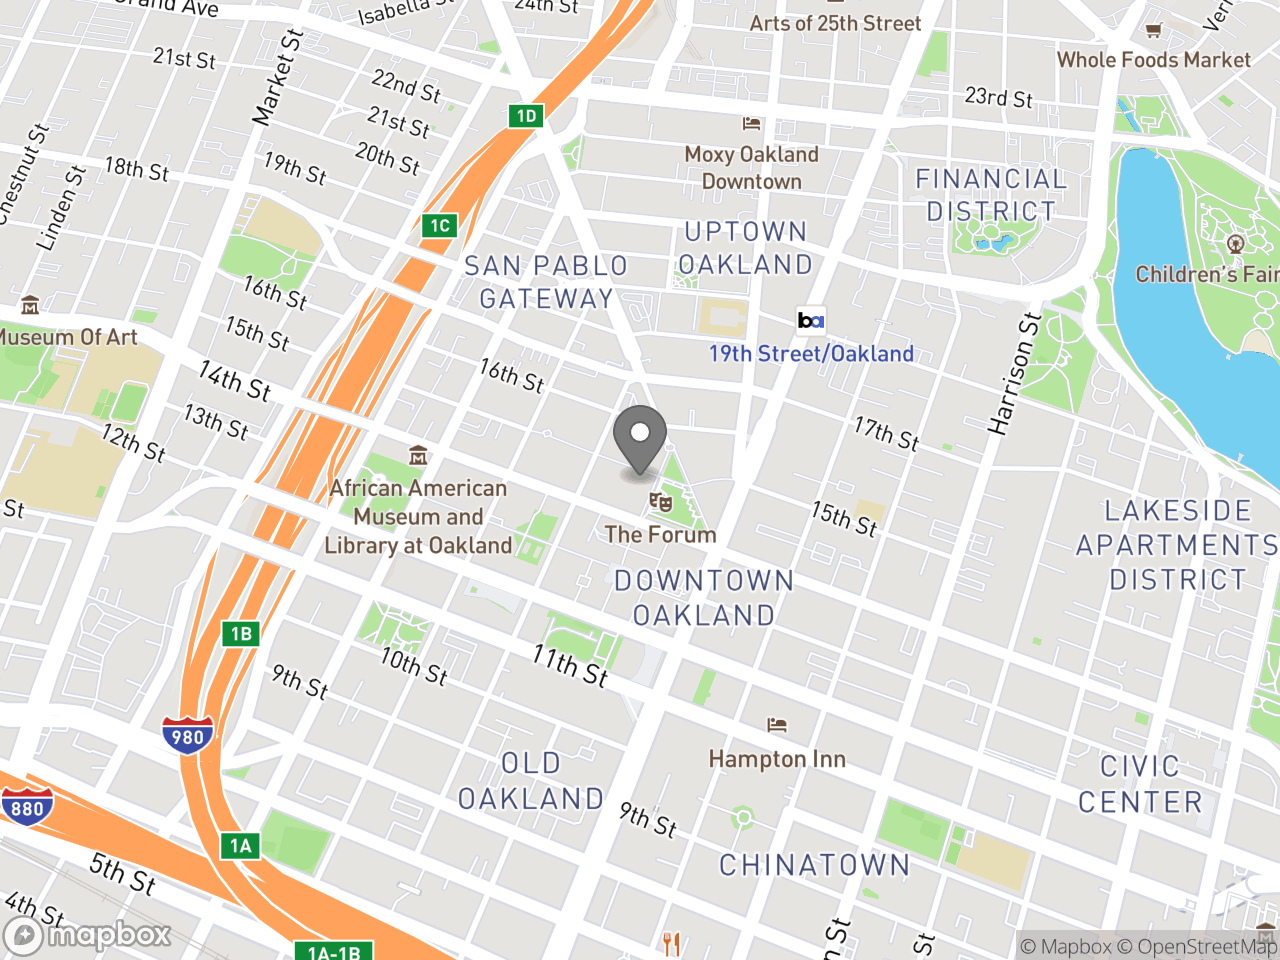 Map location for Bicyclist and Pedestrian Advisory Commission (BPAC) Meeting, May 16, 2019, located at 1 Frank H Ogawa Plaza in Oakland, CA 94612